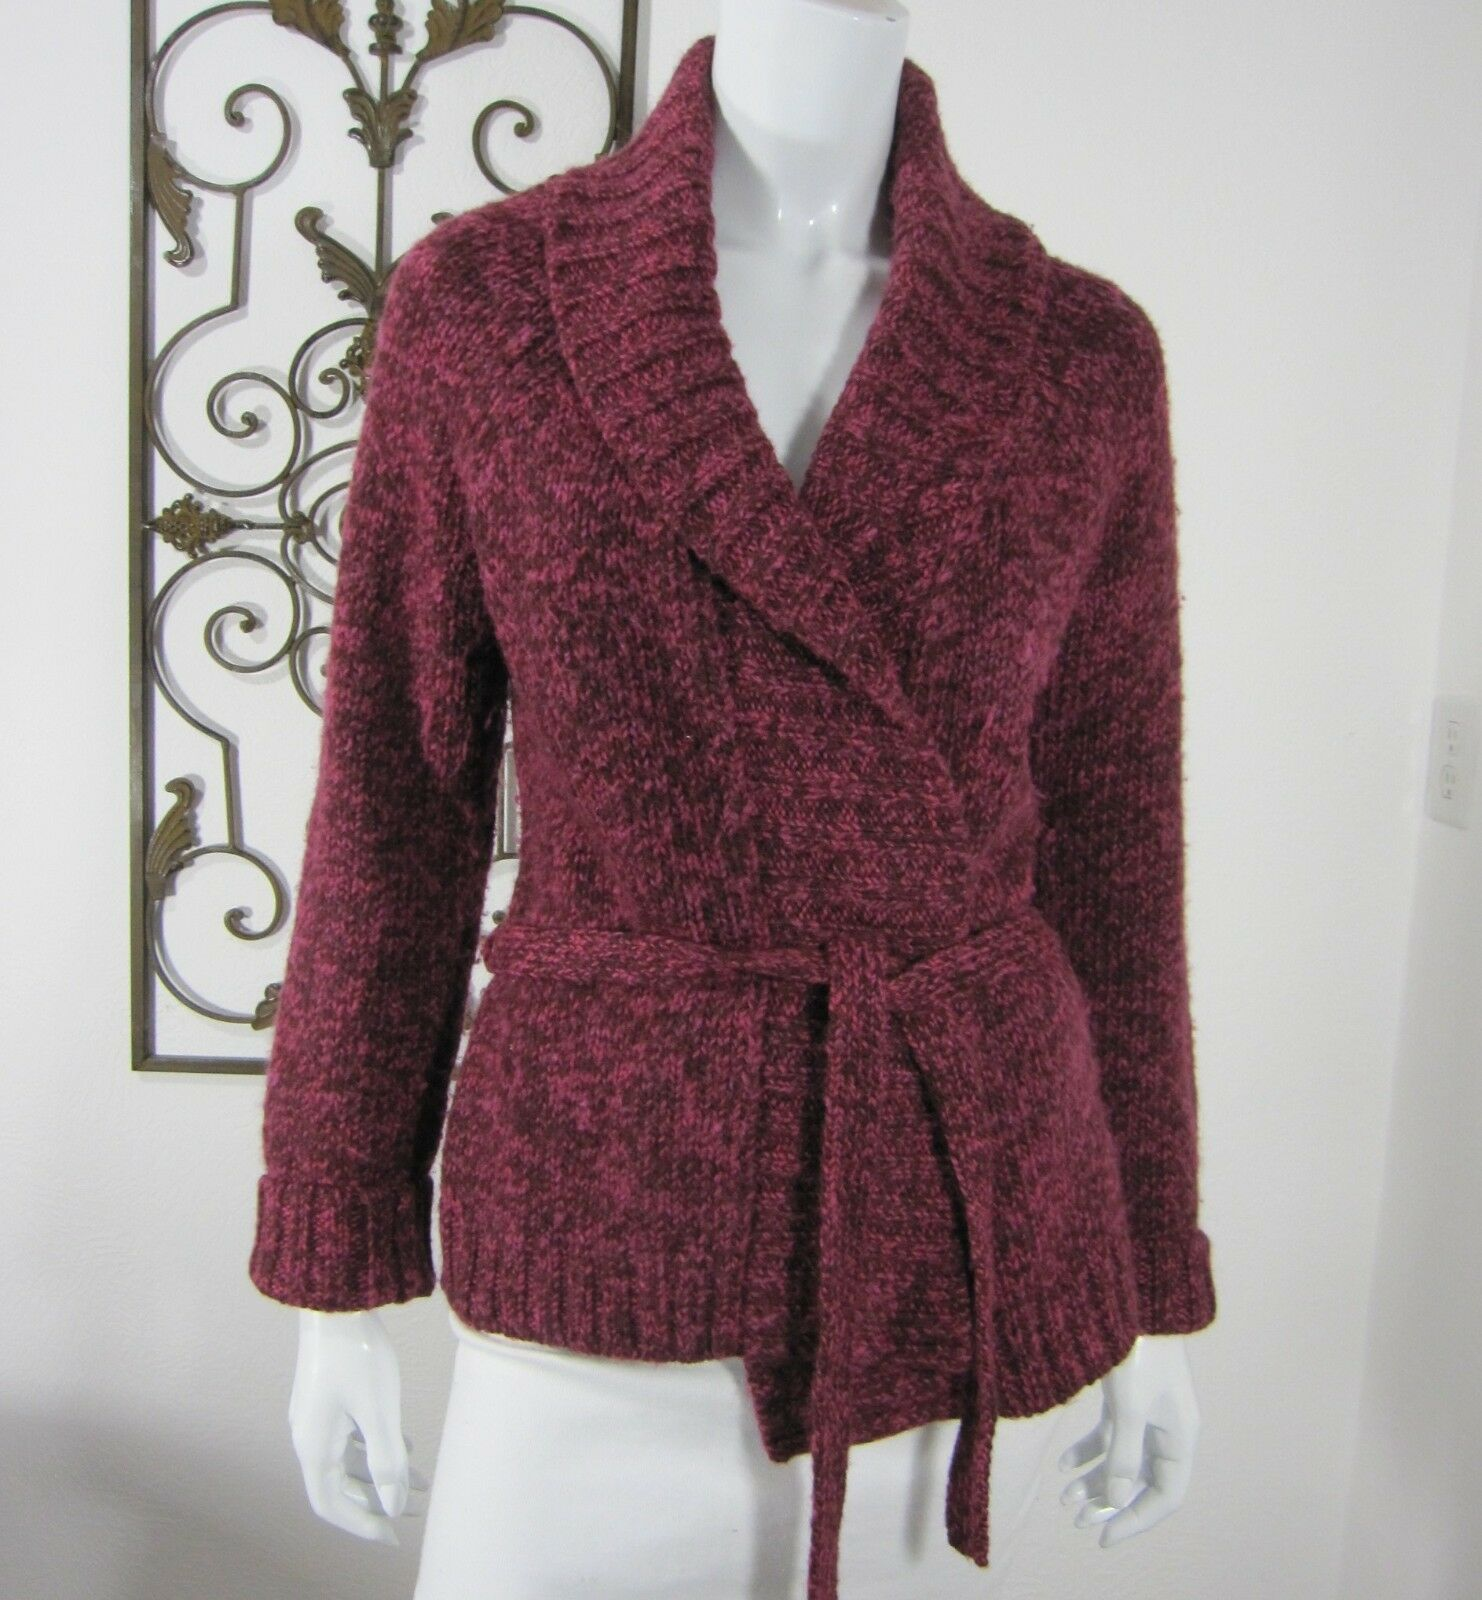 Ann Ann Ann Taylor LOFT Long Sleeve Collar Wrap Cardigan Sweater Size M Medium Burgundy 3af0b6